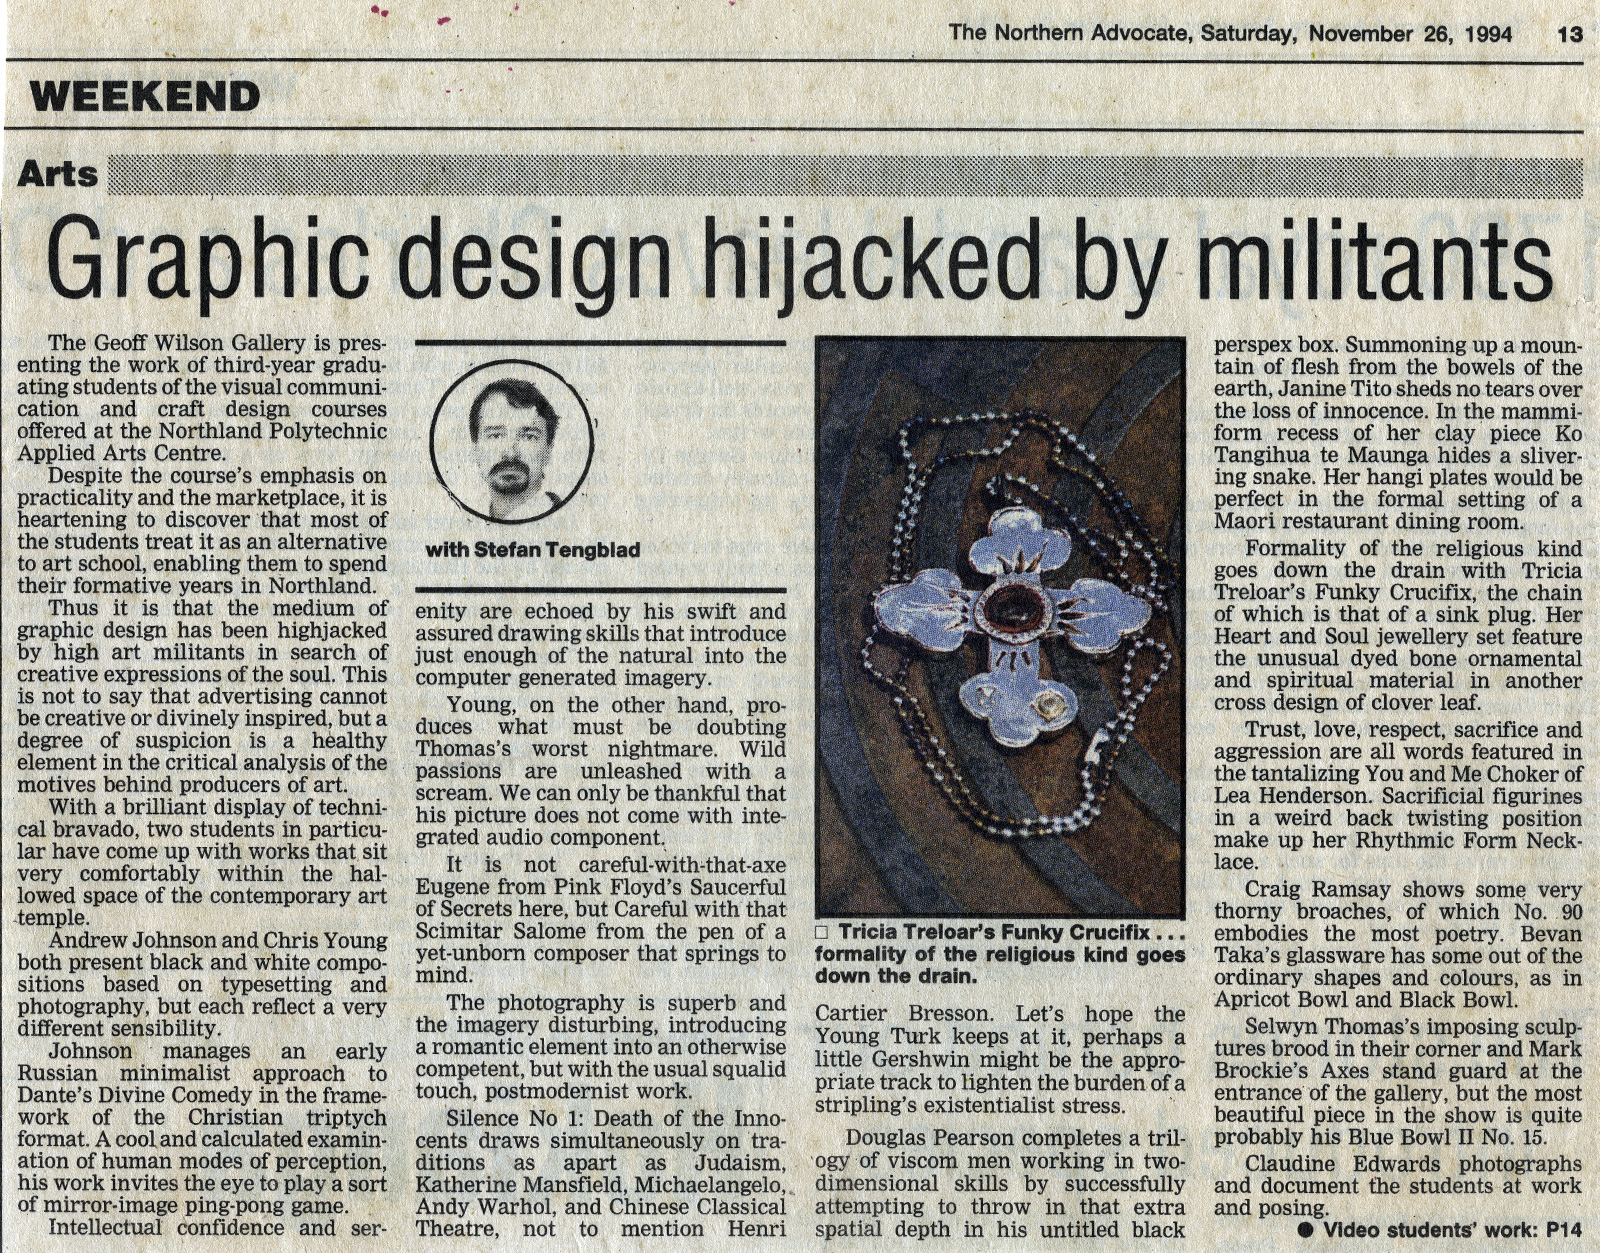 Graphic Design Hijacked by Militants